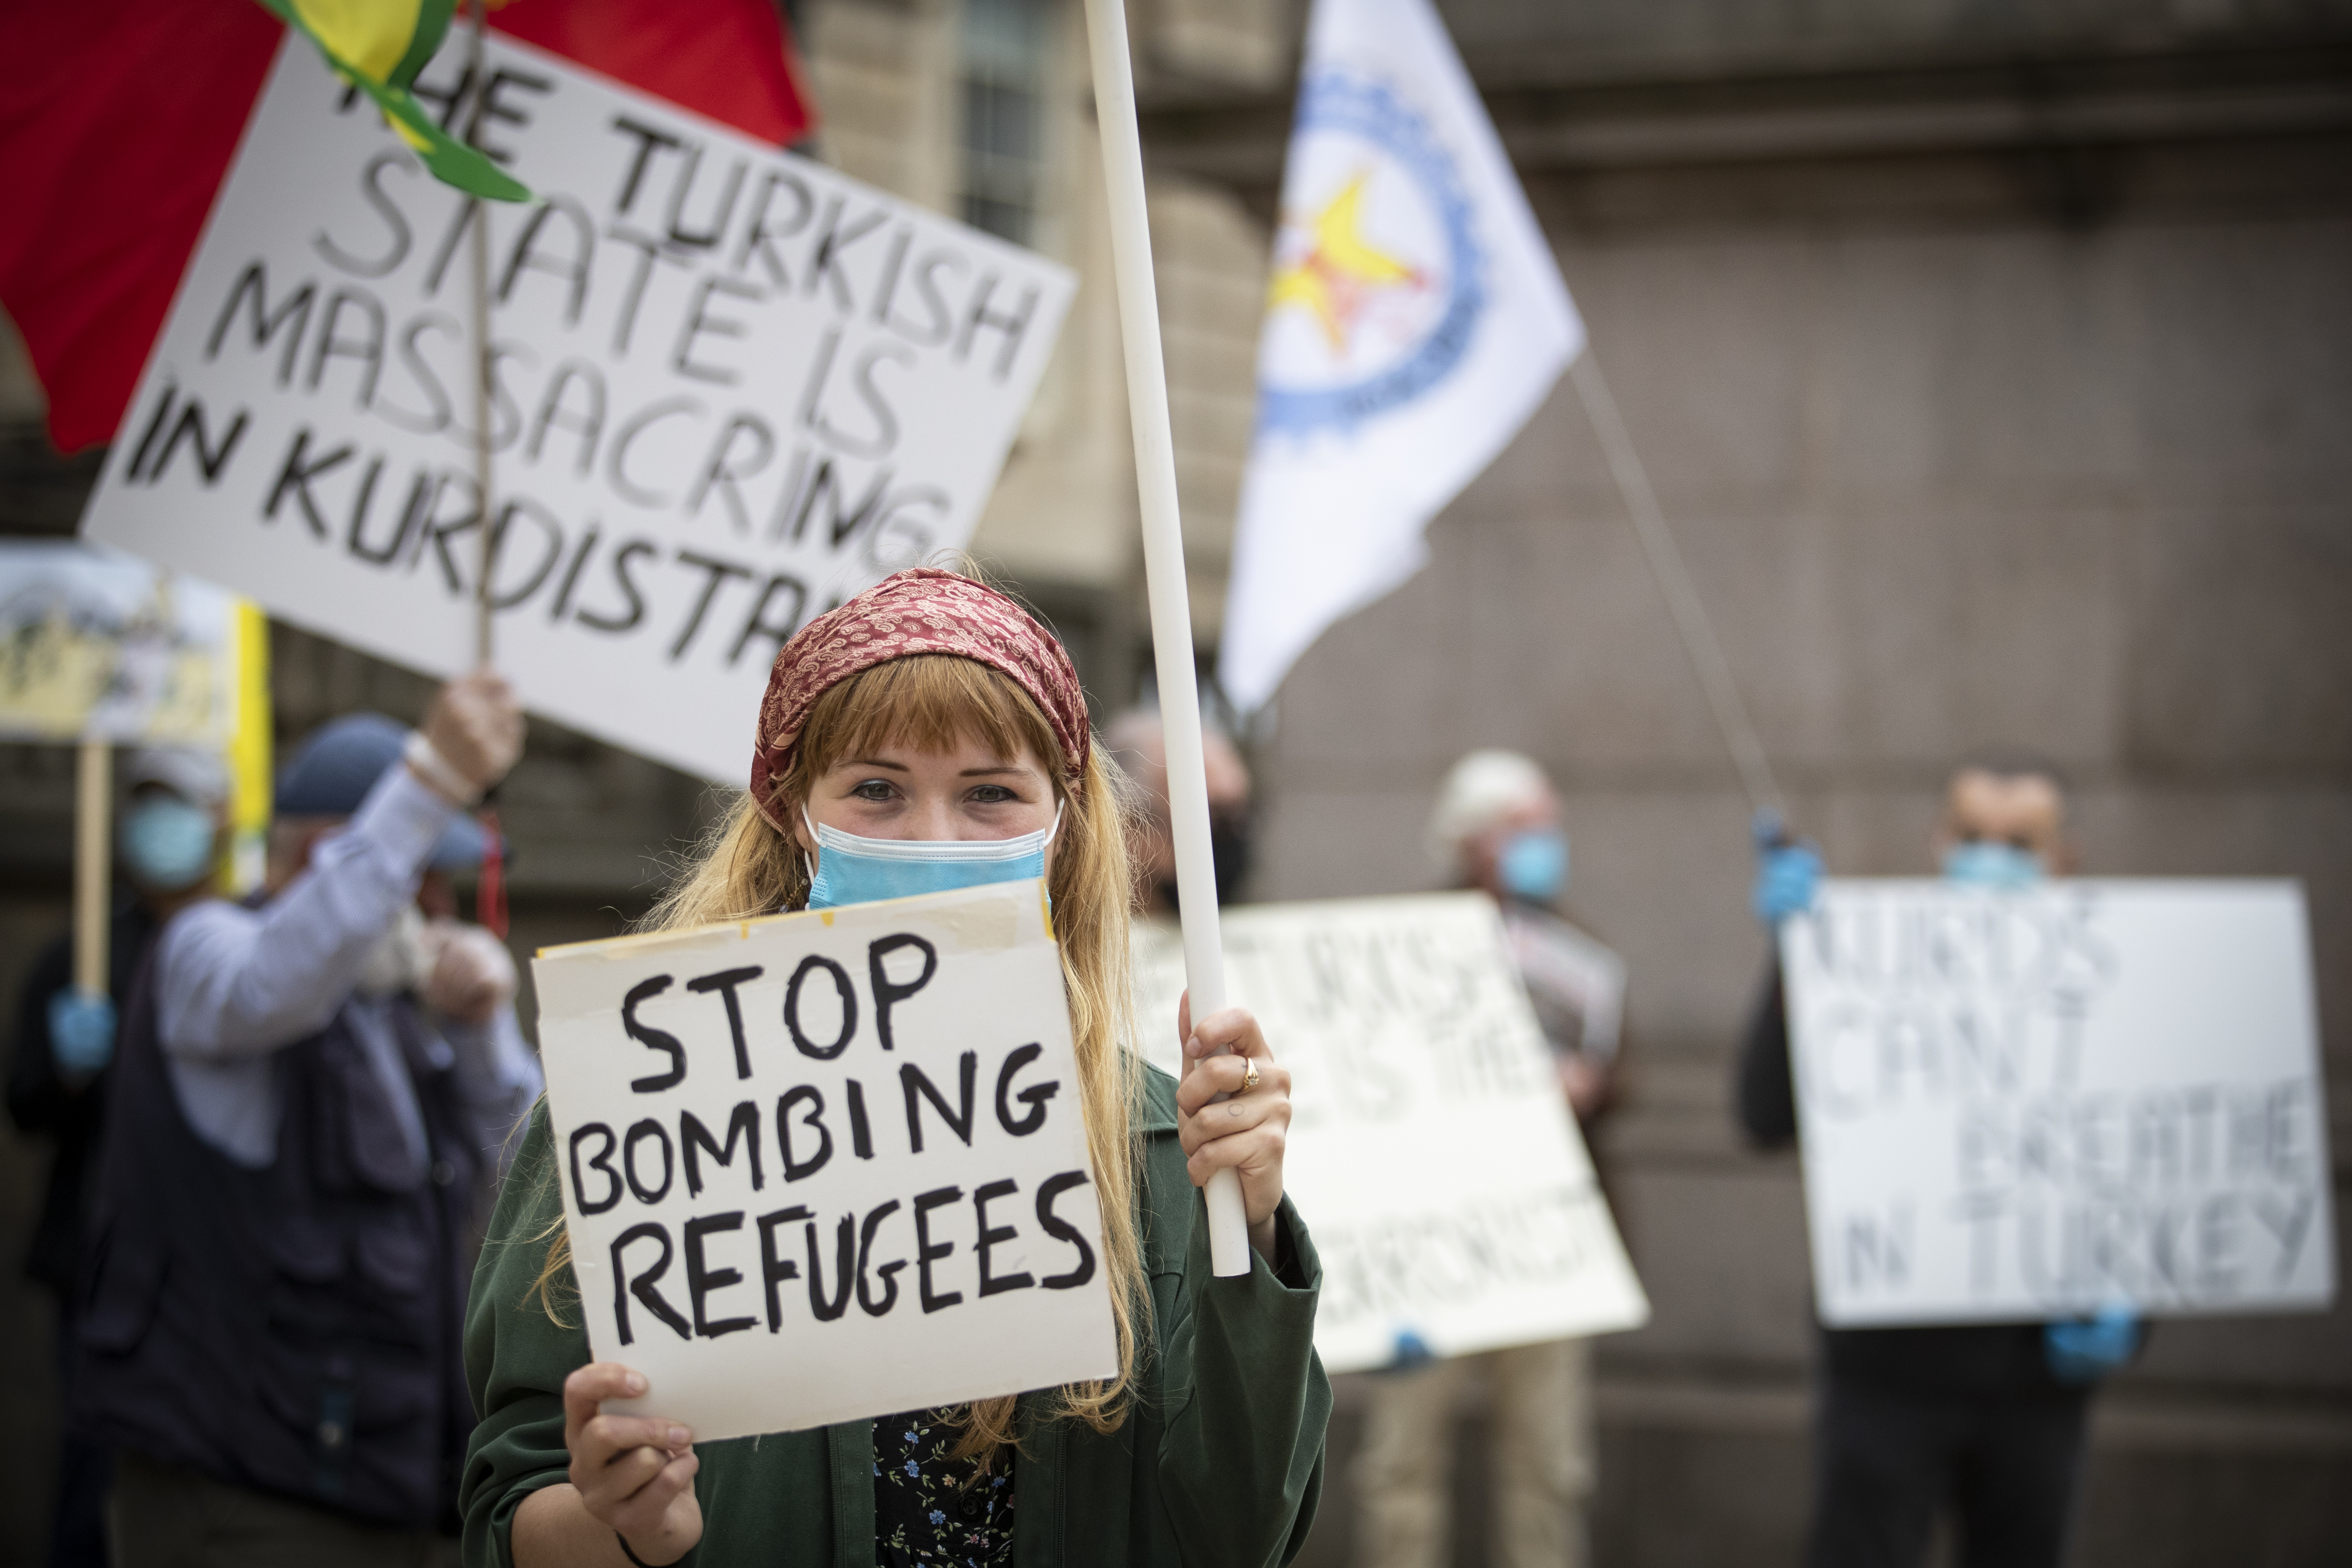 Members of Kurdish Community Scotland during a demonstration in Edinburgh protesting against Turkish air raids in Iraq. (Photo by Jane Barlow/PA Images via Getty Images)